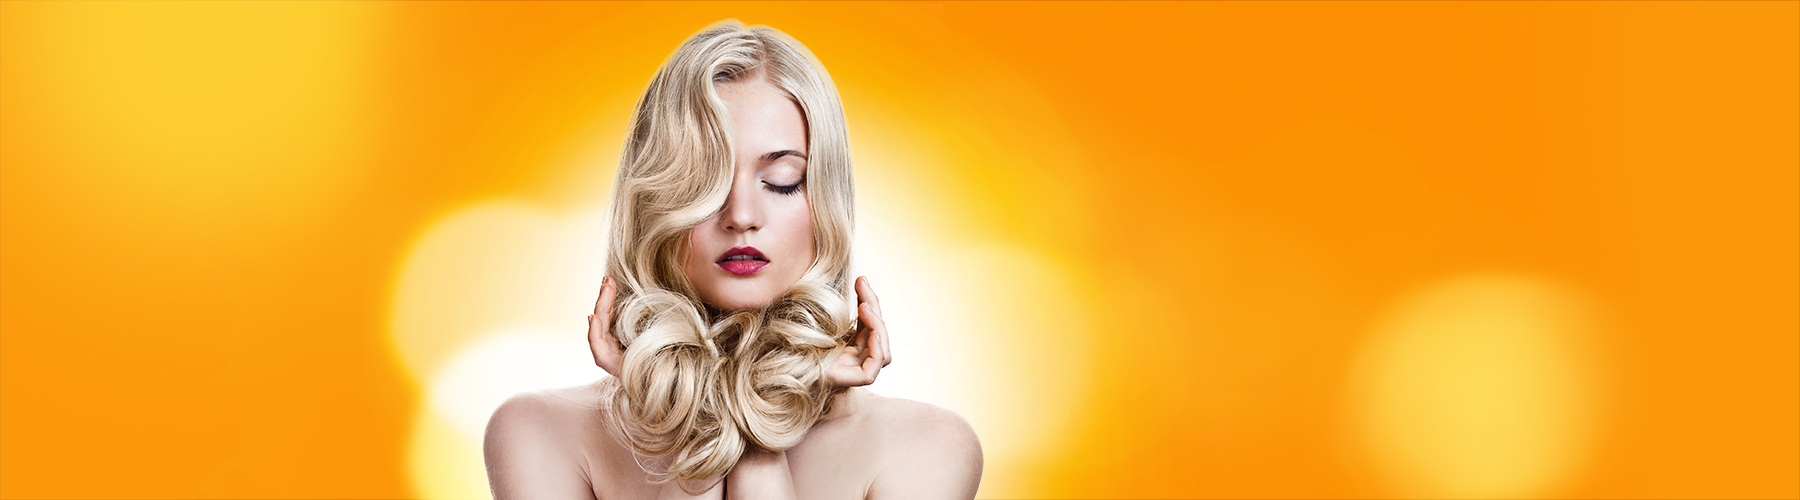 best-salon-hair-treatments-ues-nyc-05